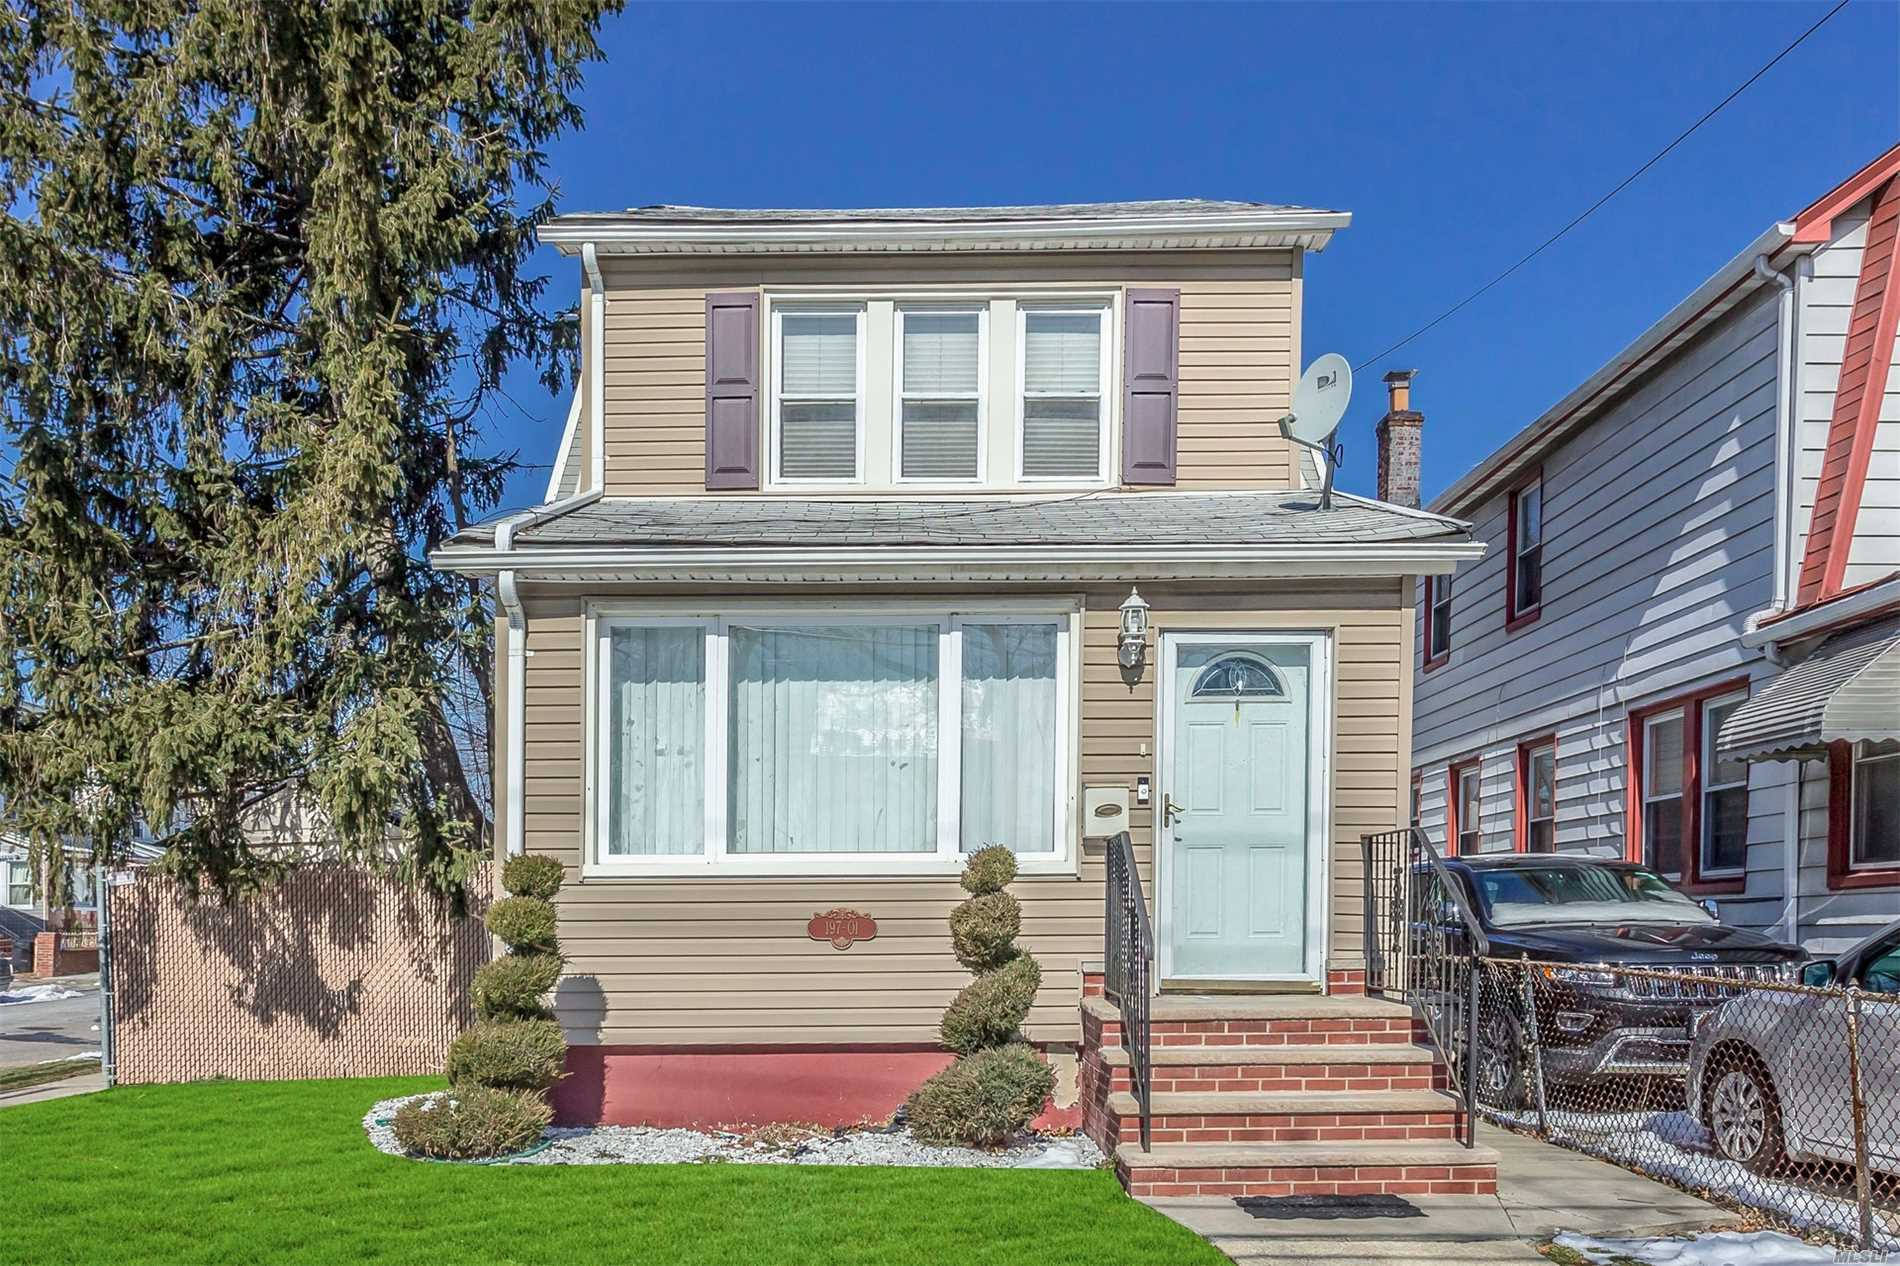 Beautifully Updated Large Colonial, Located On A Corner Property In St.Albans. Open Floor-Plan With Modern Kit, Stainless Steel Appliances & Hardwood Floors Throughout. 3 Bedrooms, Walk-Up Finished Attic & New Full Finished Bright Basement W/ Ose. Detached 2 Car Garage W/ A Large Yard In The Back & Side.